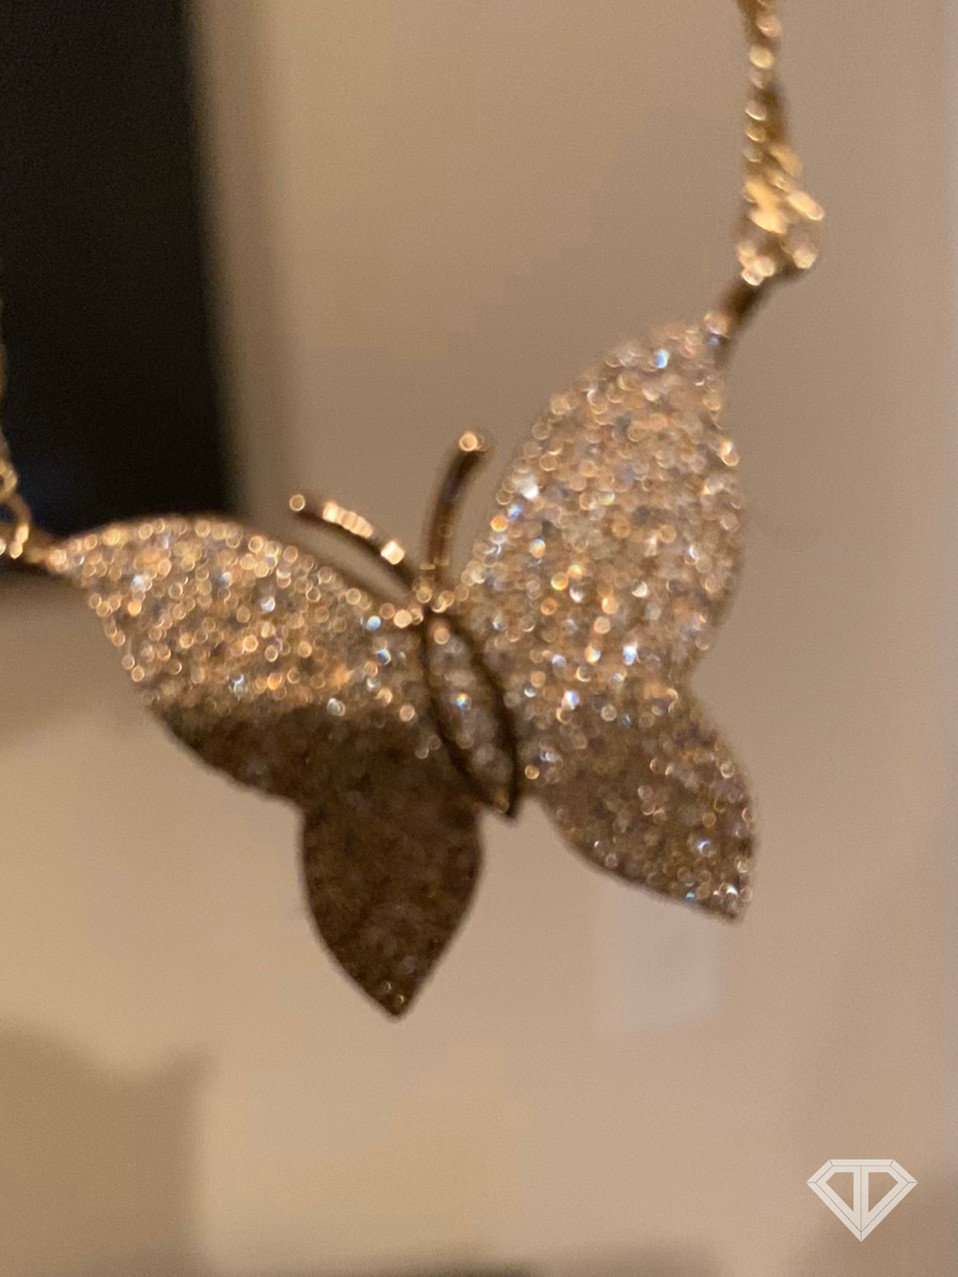 VS1 Custom 10k Butterfly Necklace w/ Singapore Chain